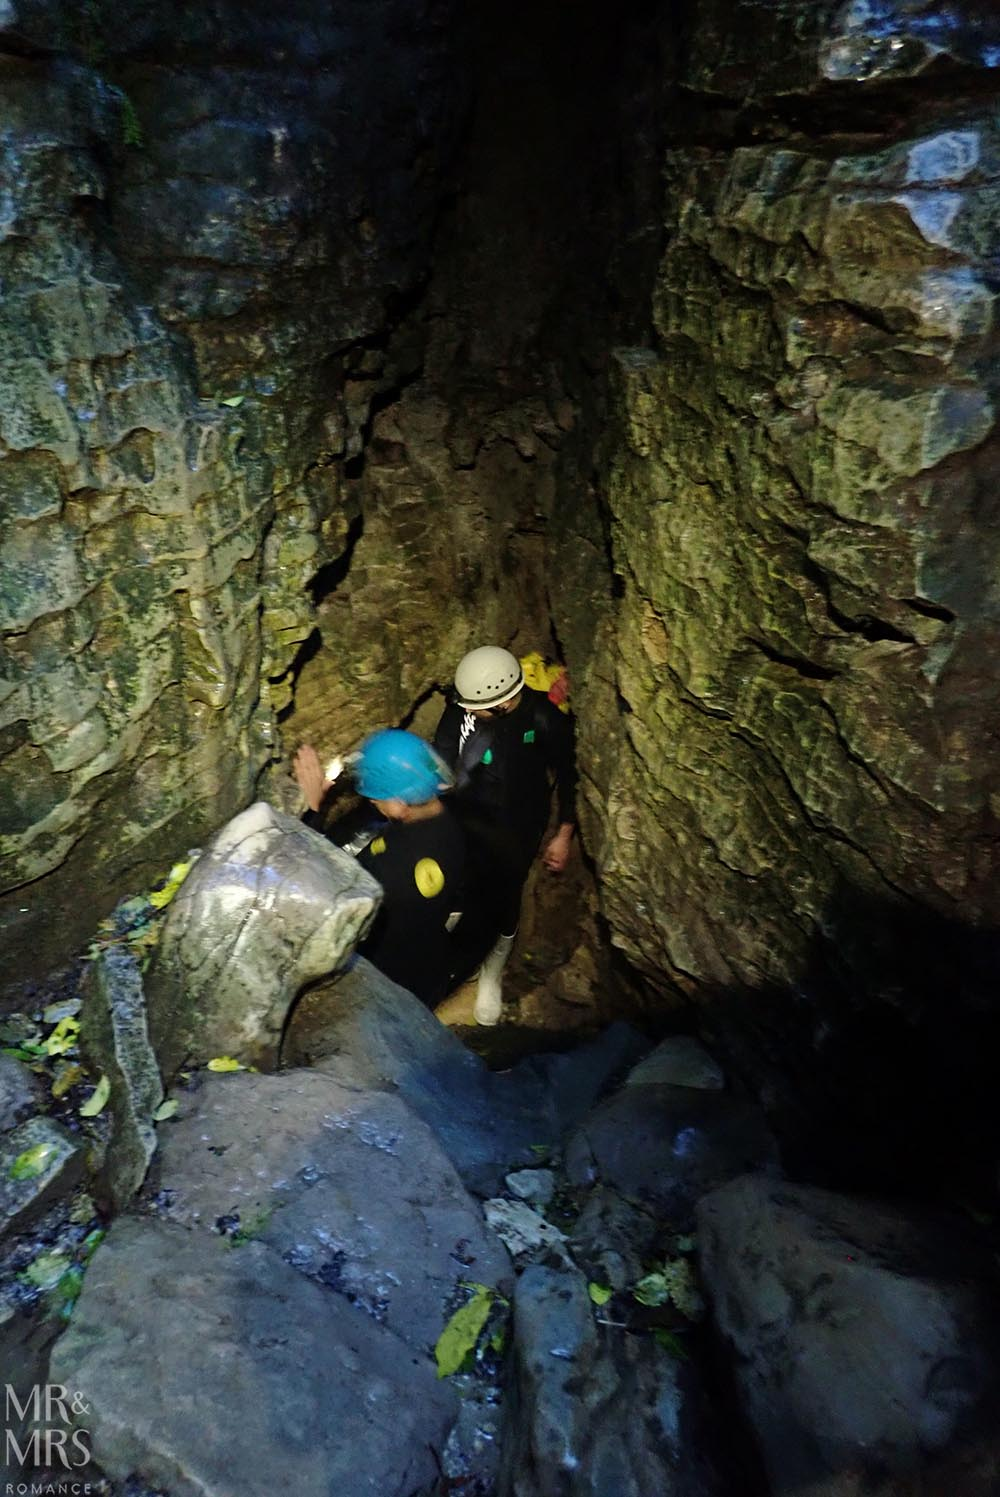 New Zealand Waitomo glowworm cave and Blackwater Rafting caving